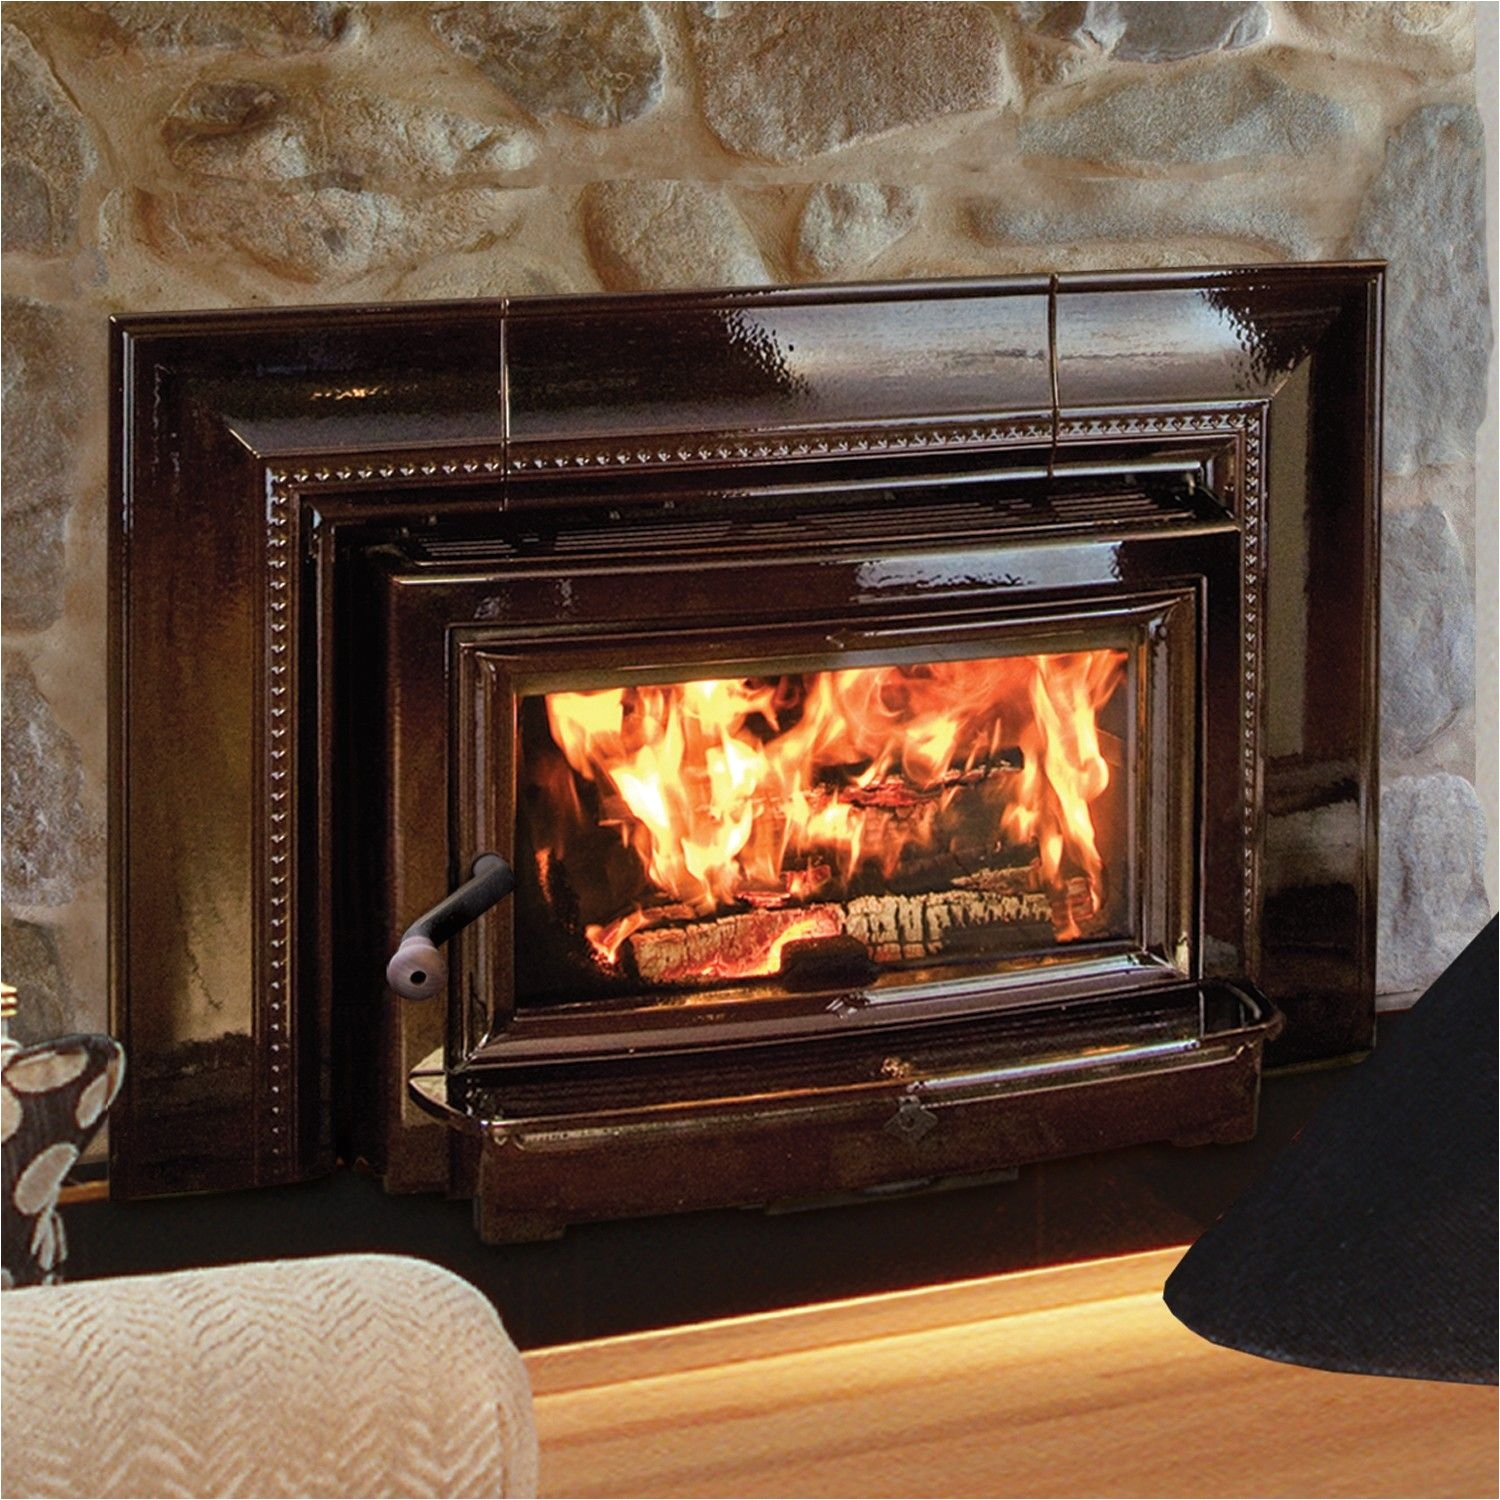 propane fireplace insert repair hearthstone insert clydesdale 8491 wood inserts heats up to 2 000 of propane fireplace insert repair